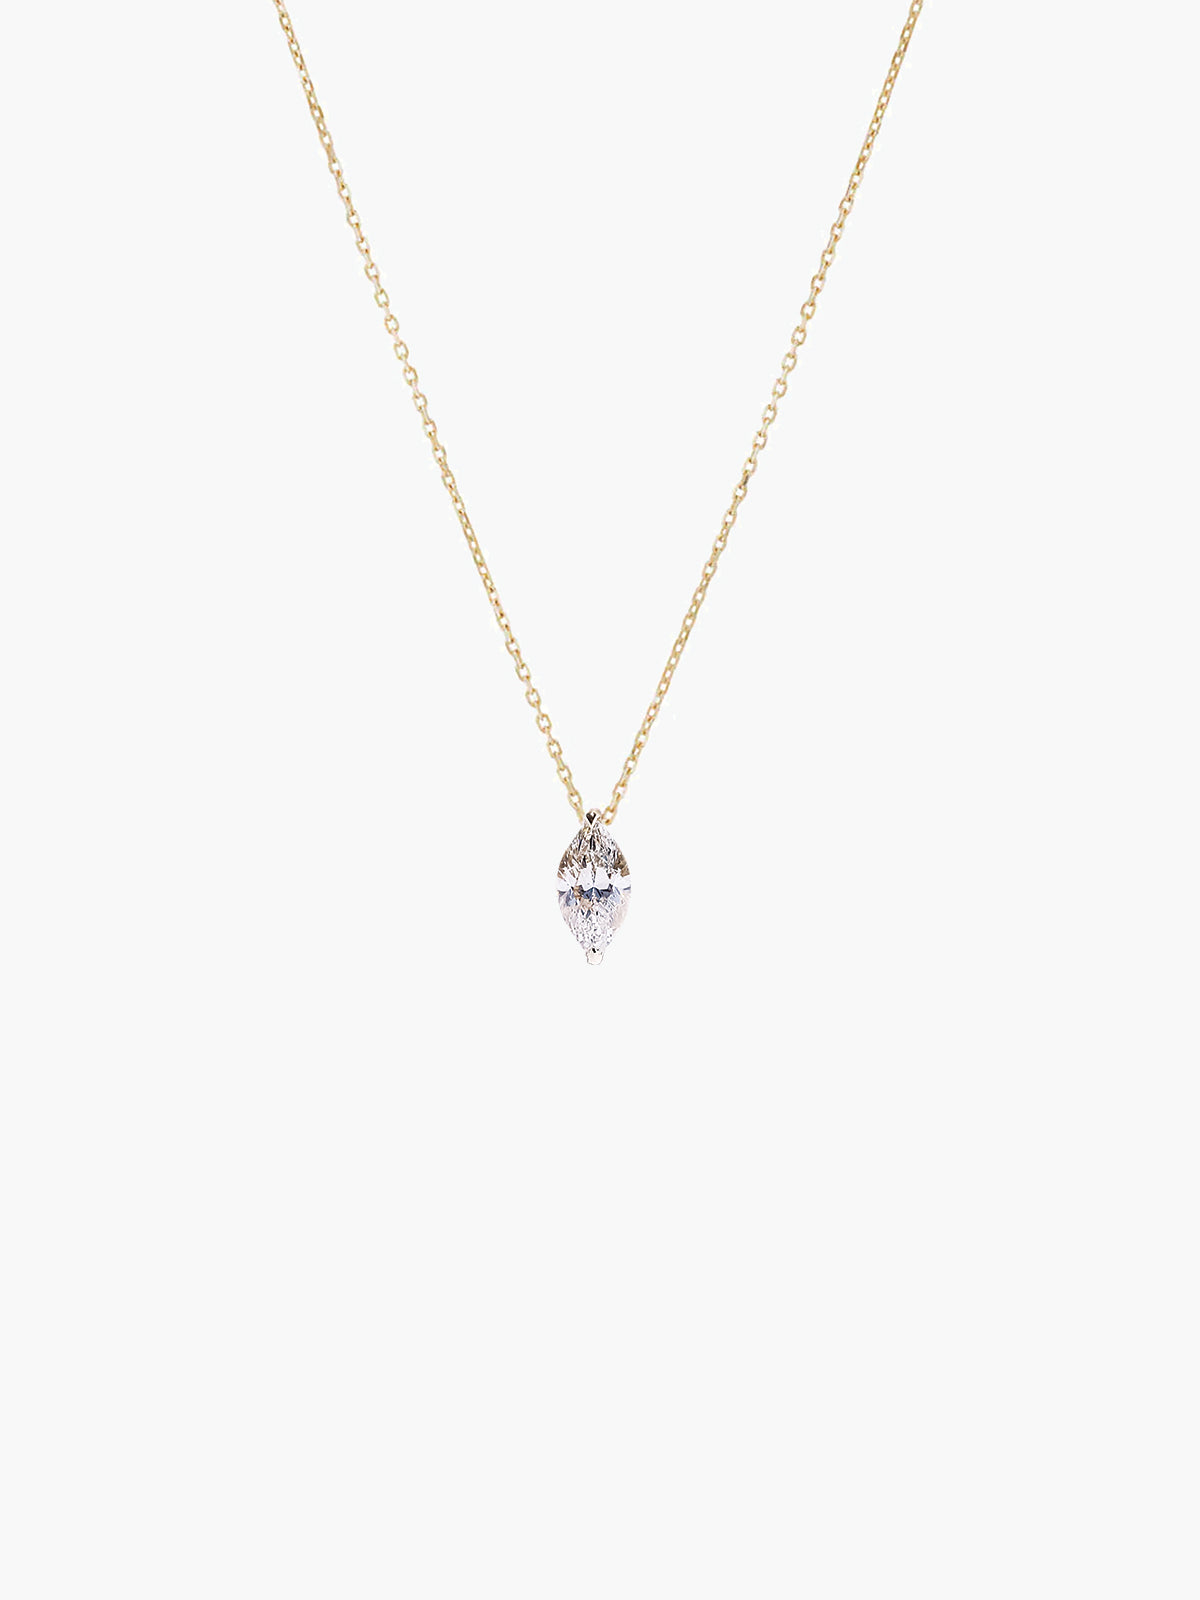 Mini Marquise Diamond Necklace | Yellow Gold Mini Marquise Diamond Necklace | Yellow Gold